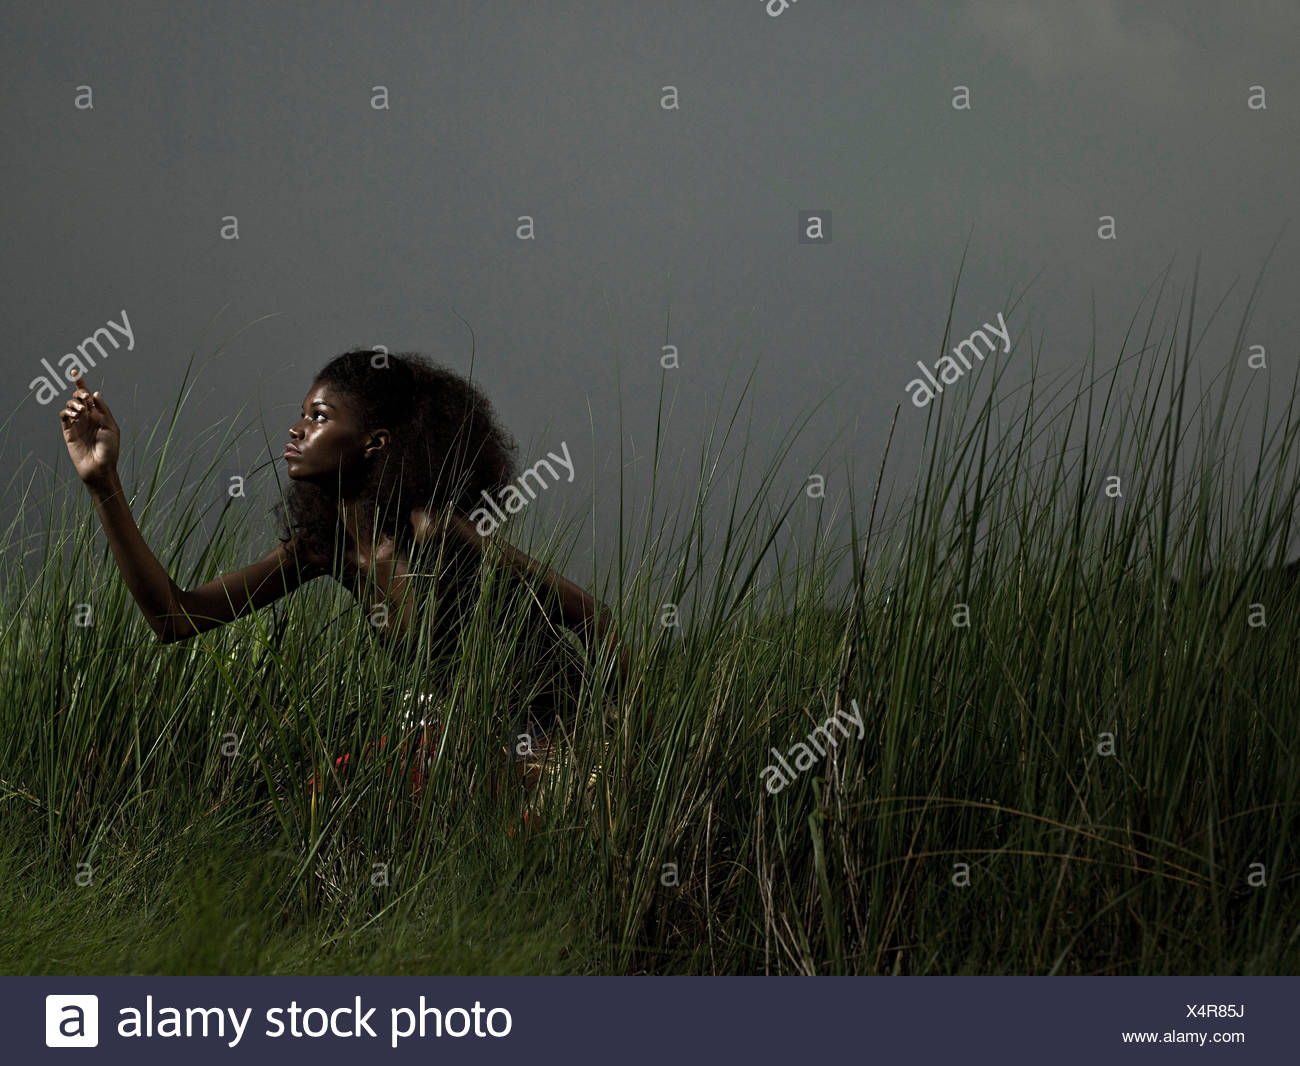 Female athlete in grass - Stock Image